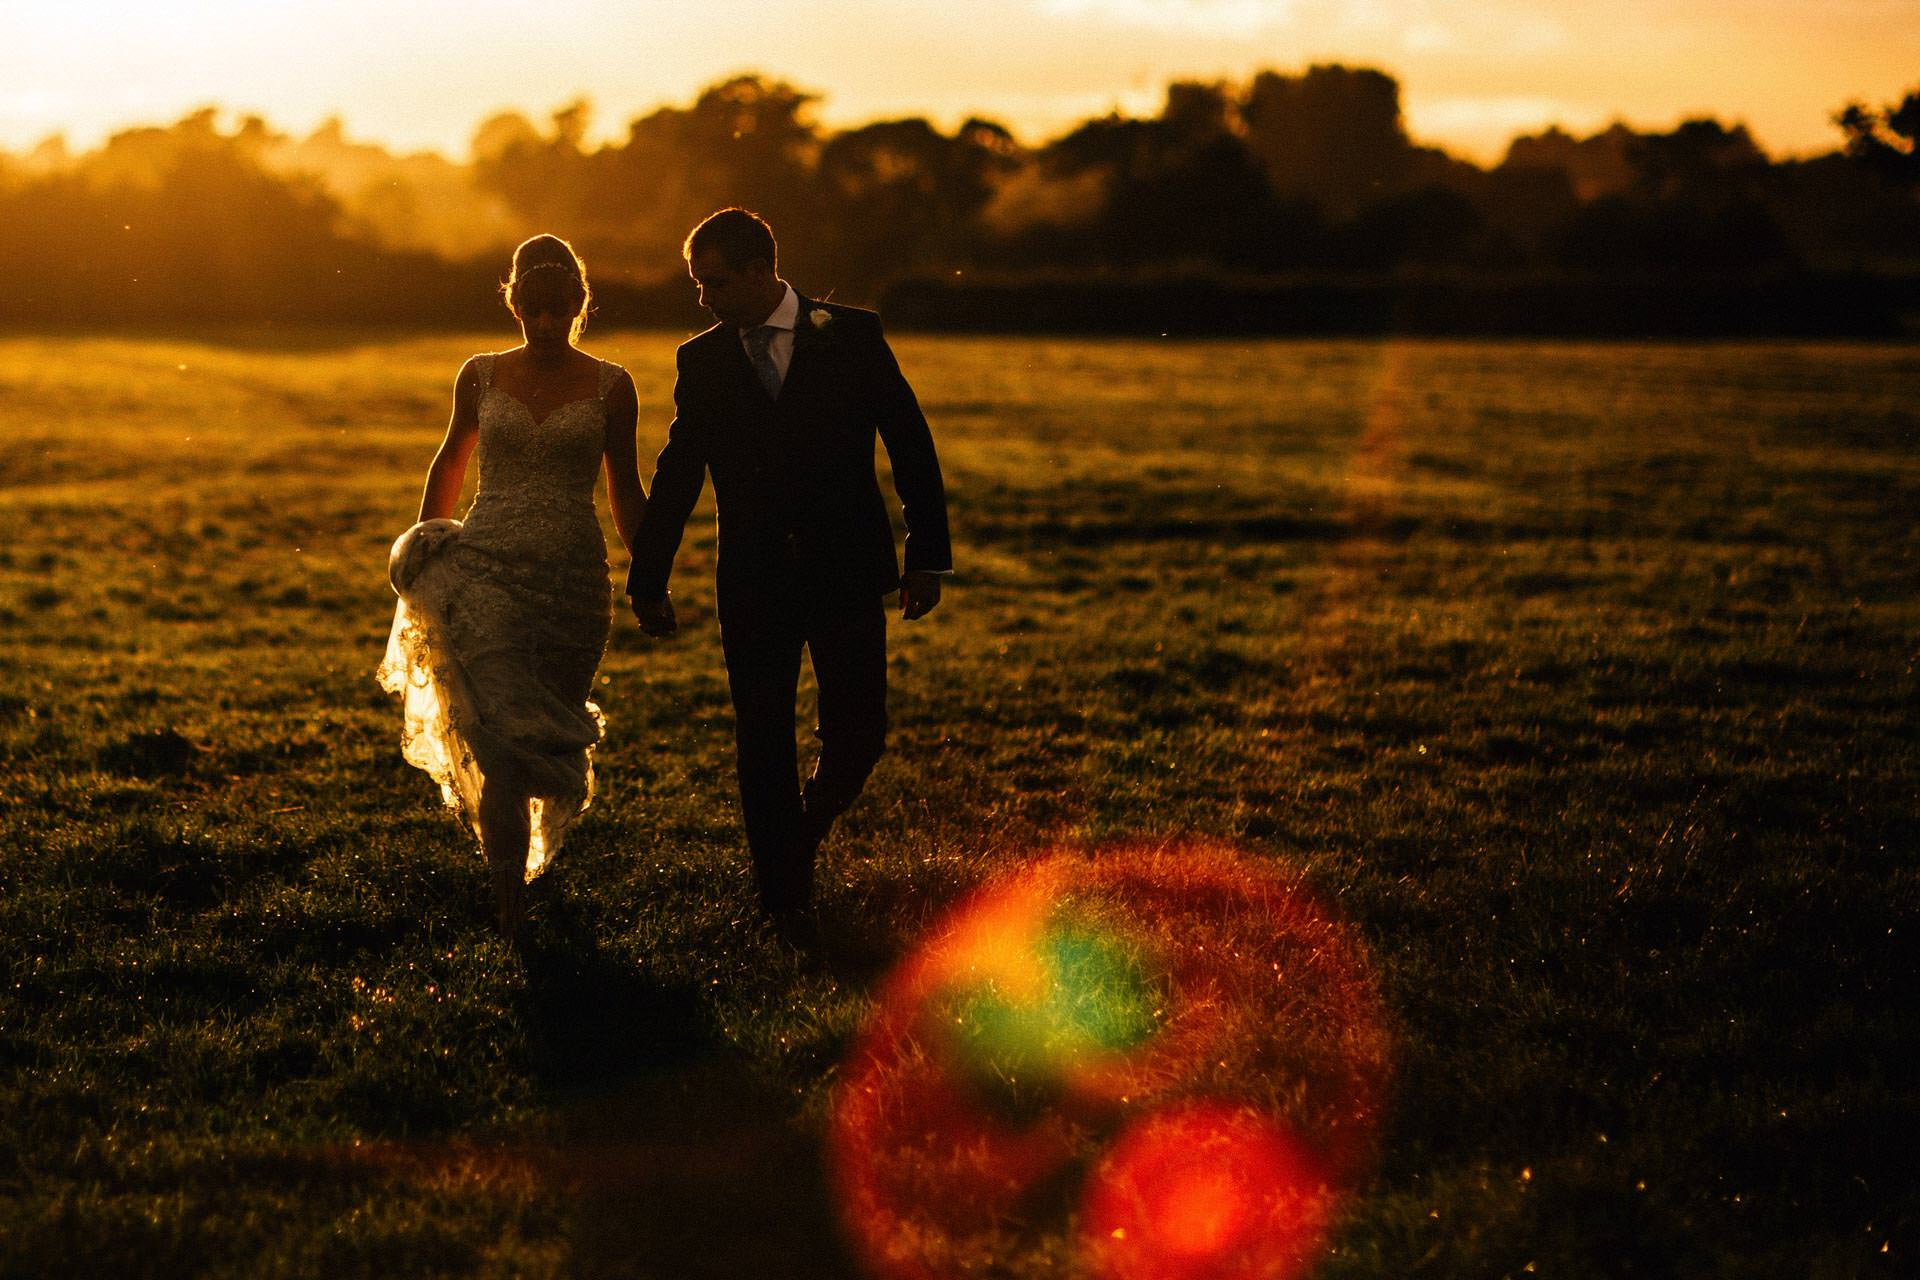 Best wedding photography 2016 - walking through a field at sunset